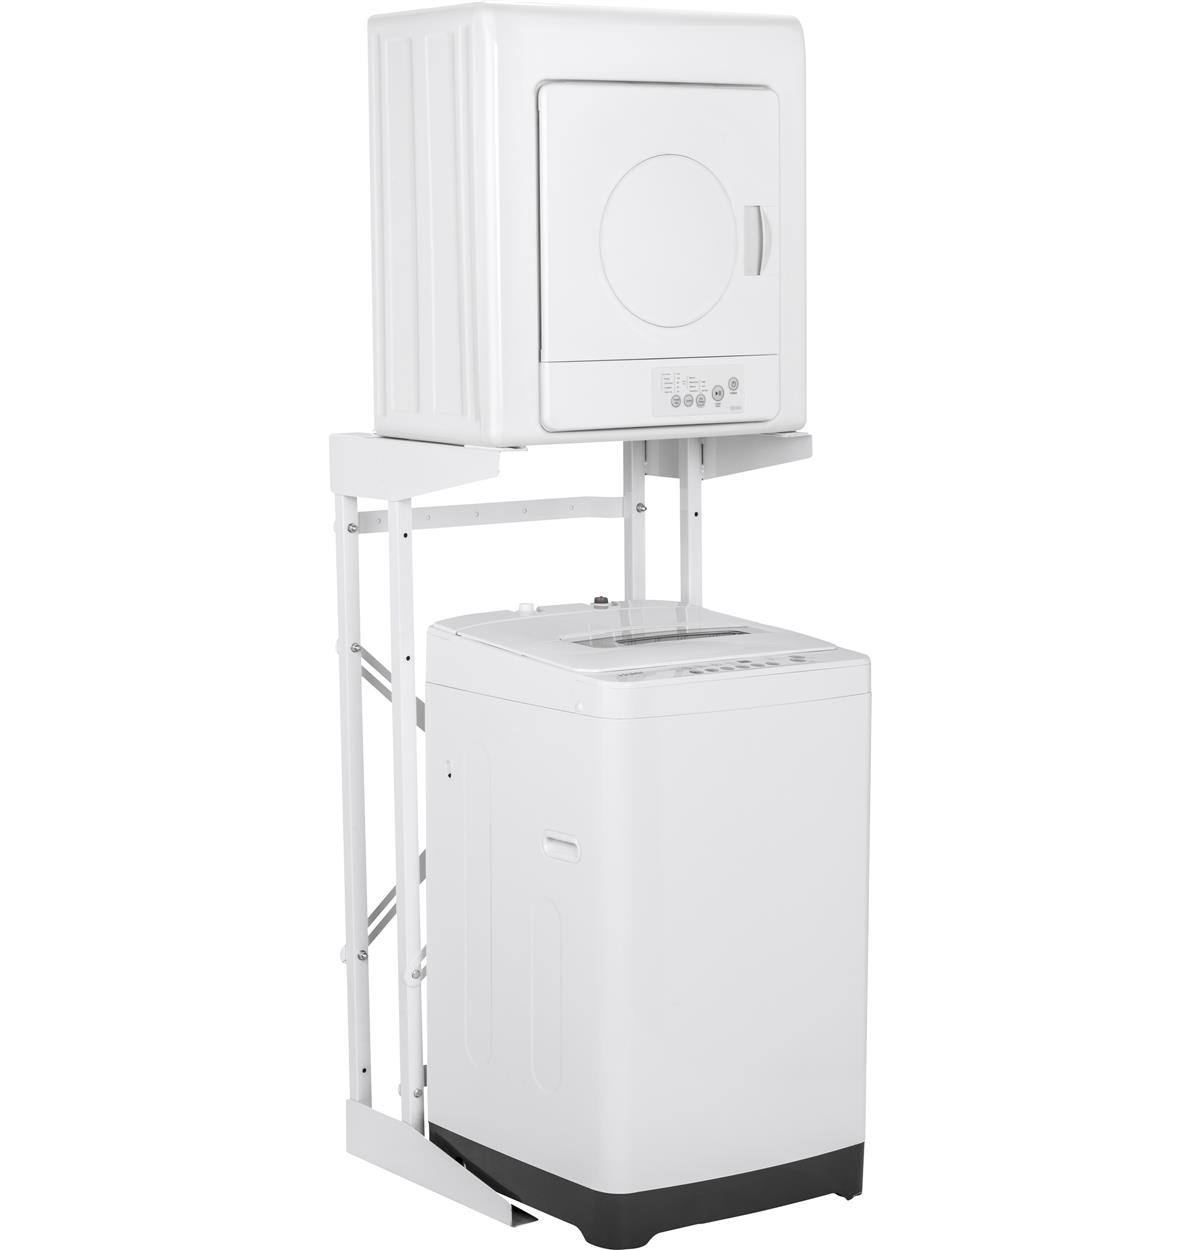 White Portable or Stationary HLP141E Un-installed/free-standing